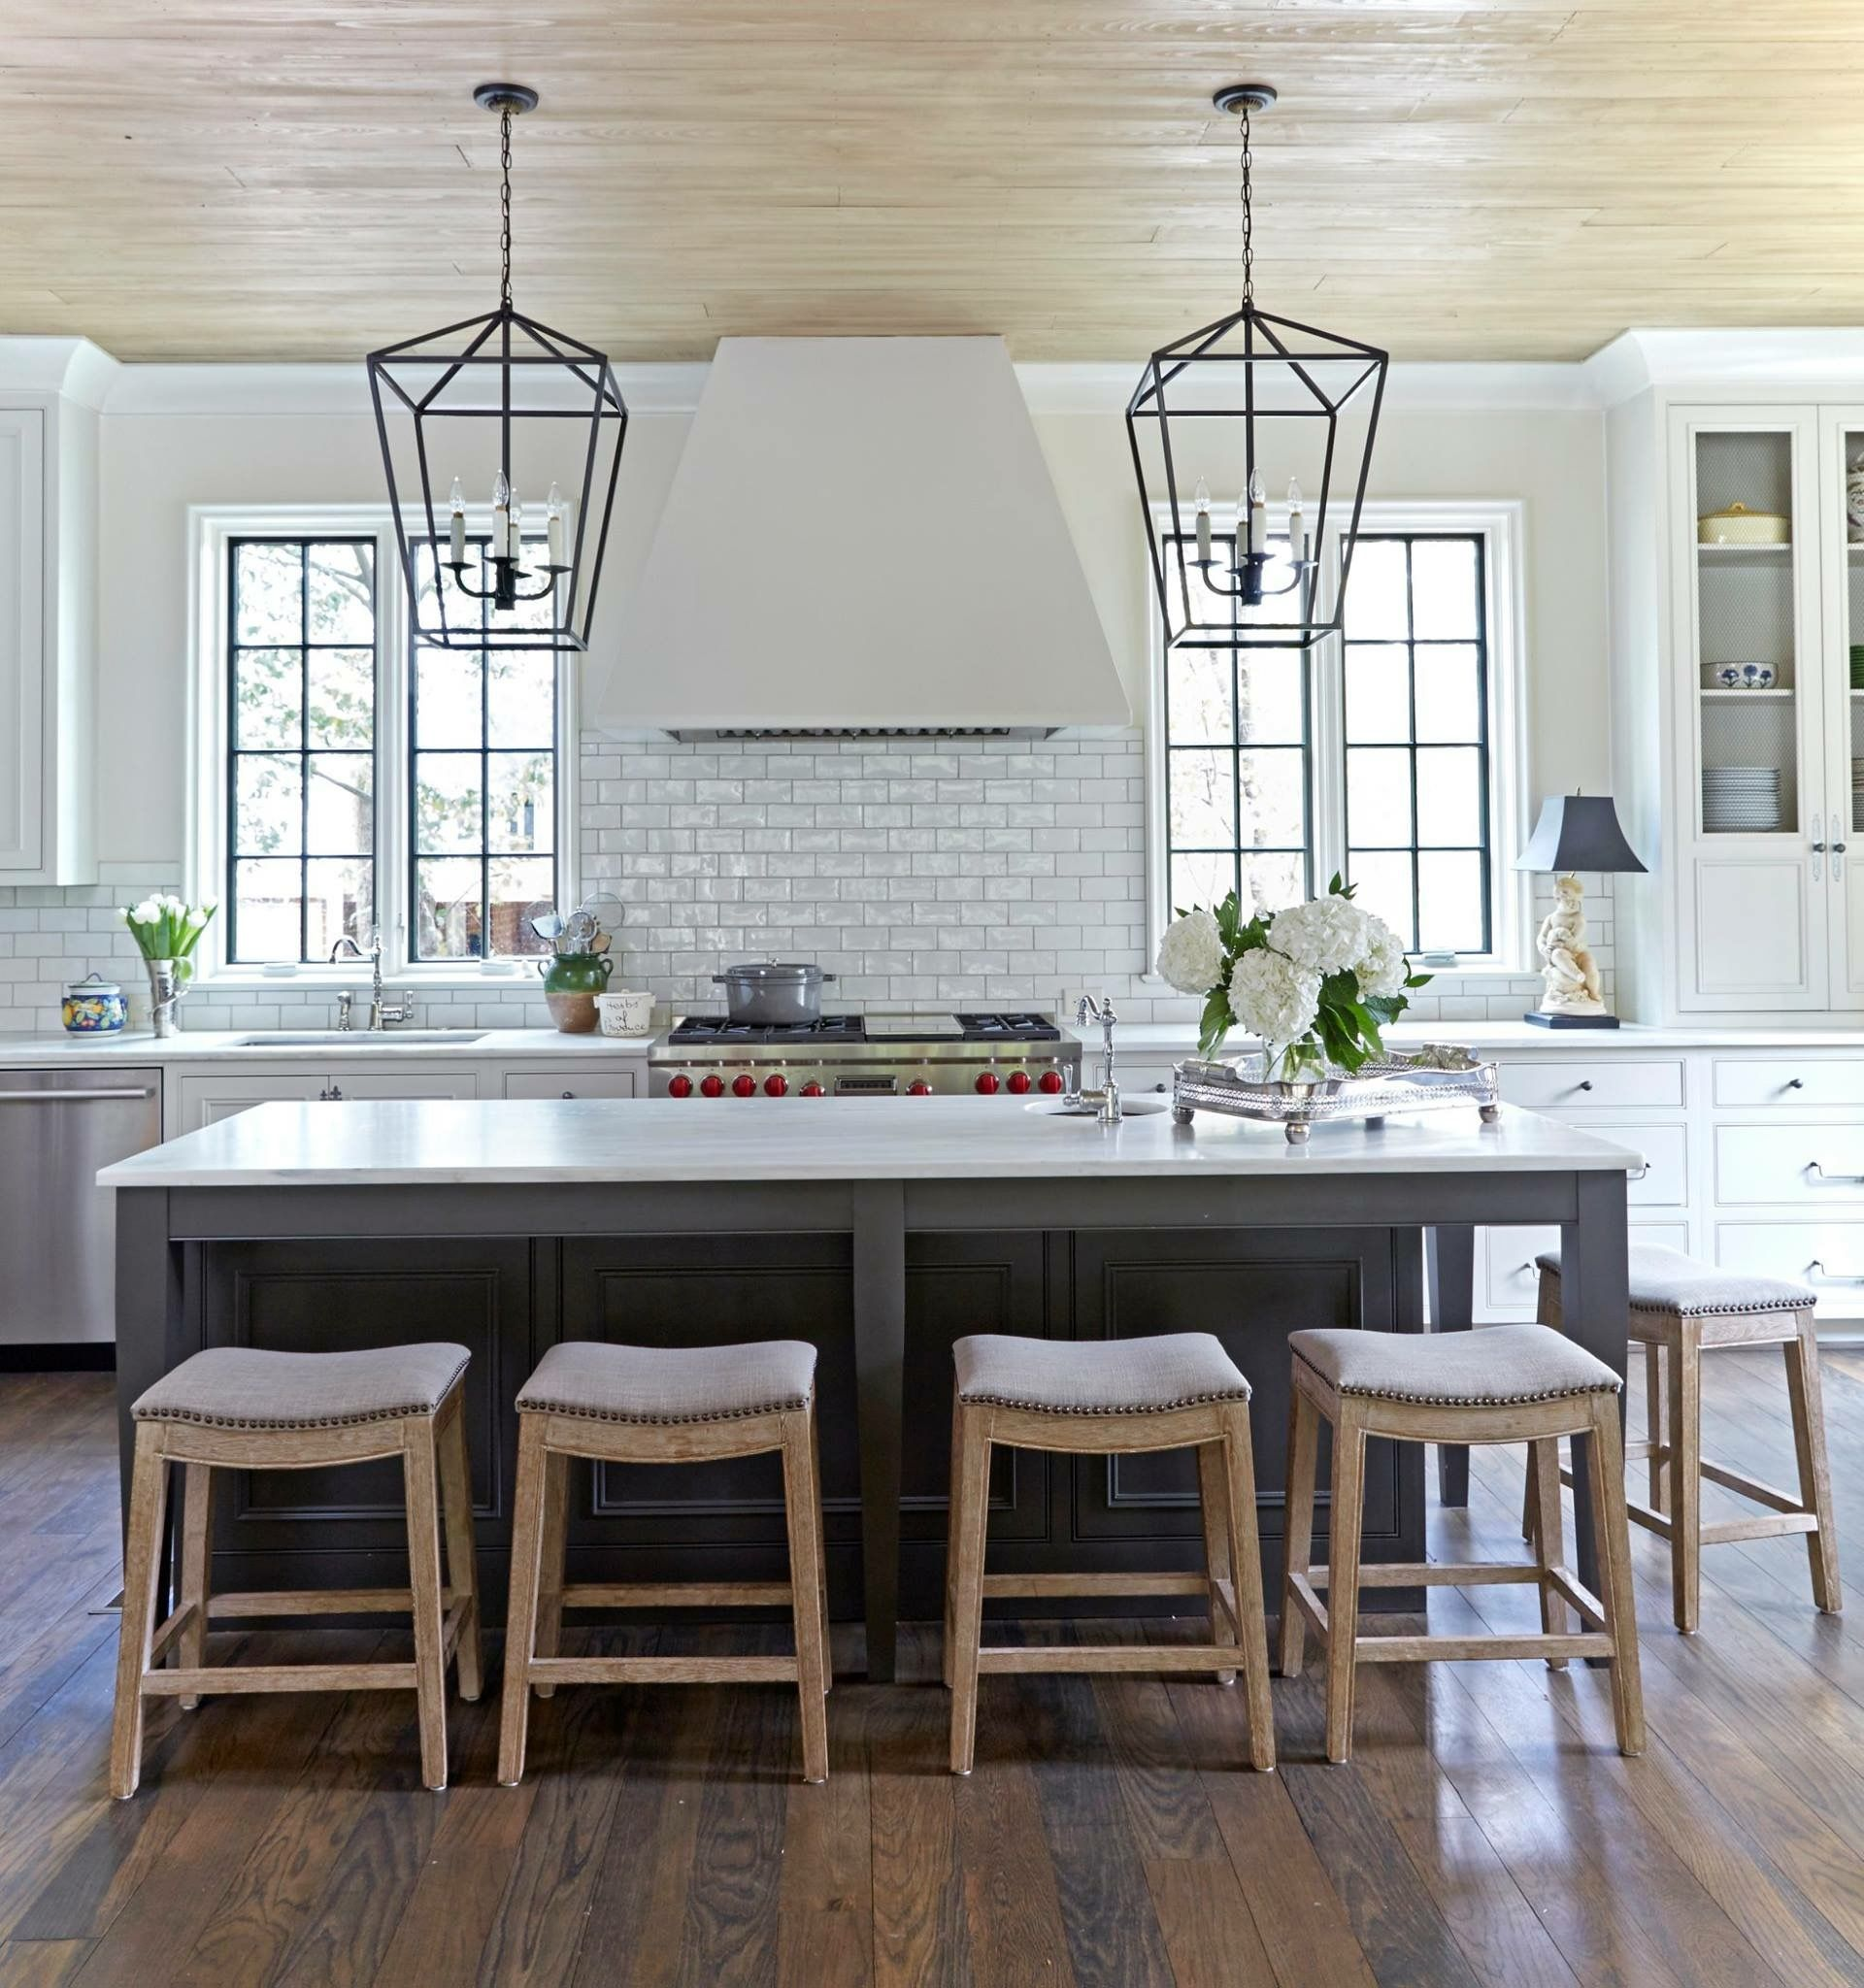 wall kitchen glass over electric range mount ducting hoods fan classy the installation hood euro in vent size luxury stove and with best full top stainless under islands grey photos combo cooktop ideas metal amusing burner island cabinet exhaust of steel fans table